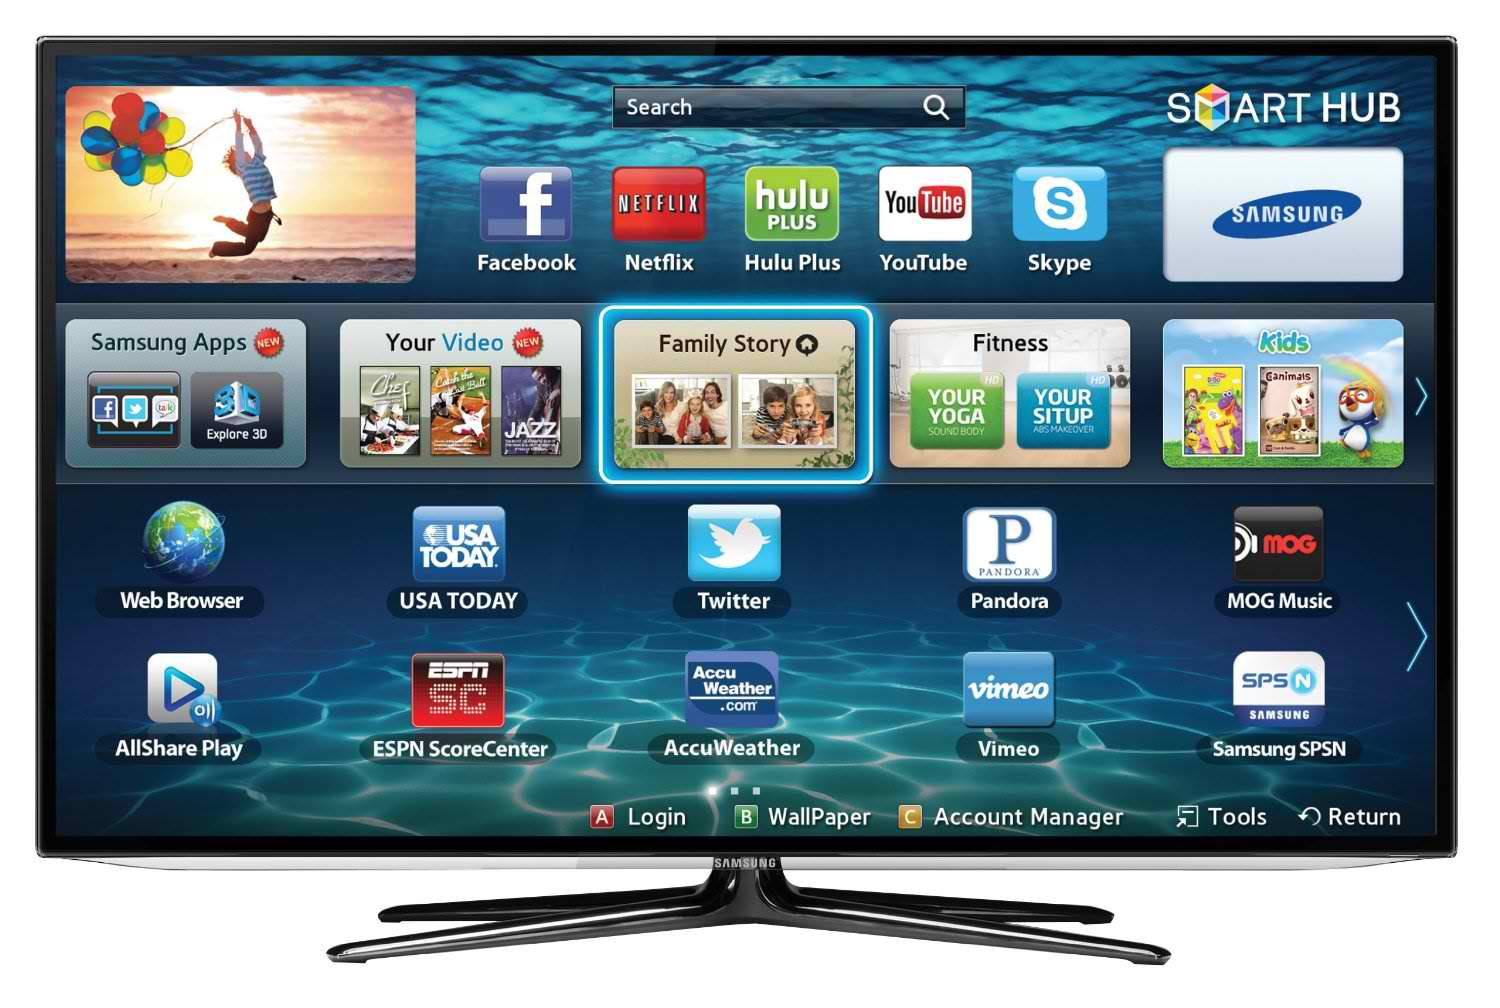 Samsung Smart Tv1 Samsung Smart TV Price Drops: Samsung 46 3D Slim LED HDTV $897 (Retail $1,529)